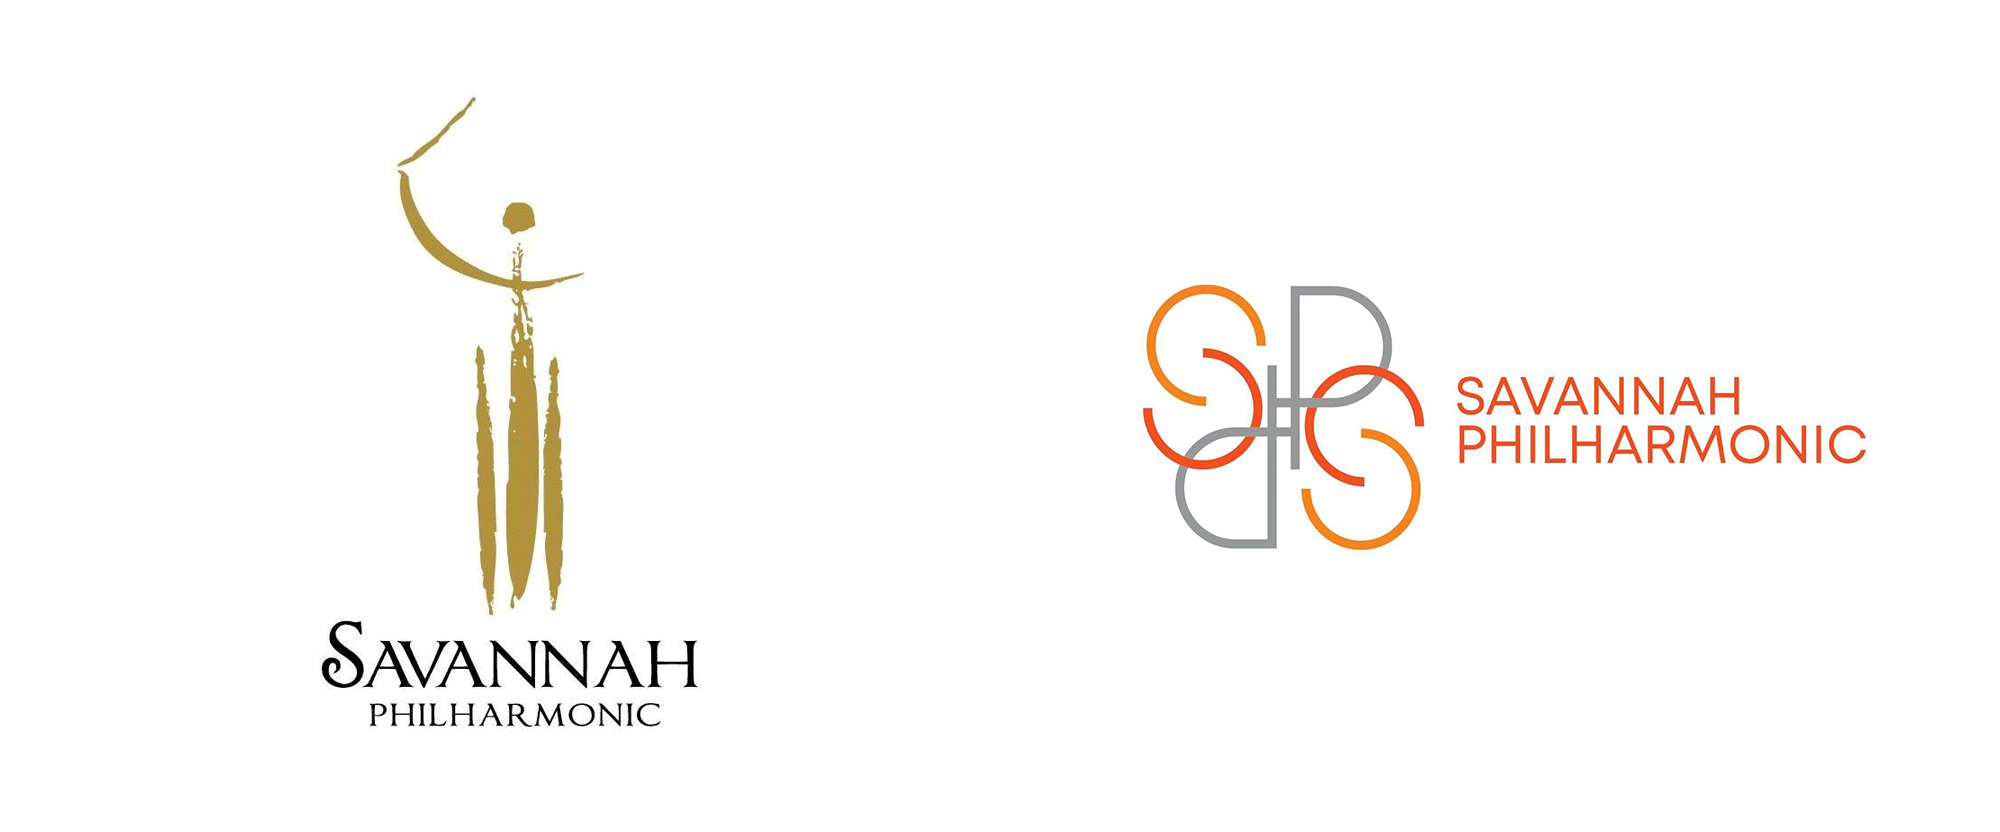 New Logo for Savannah Philharmonic